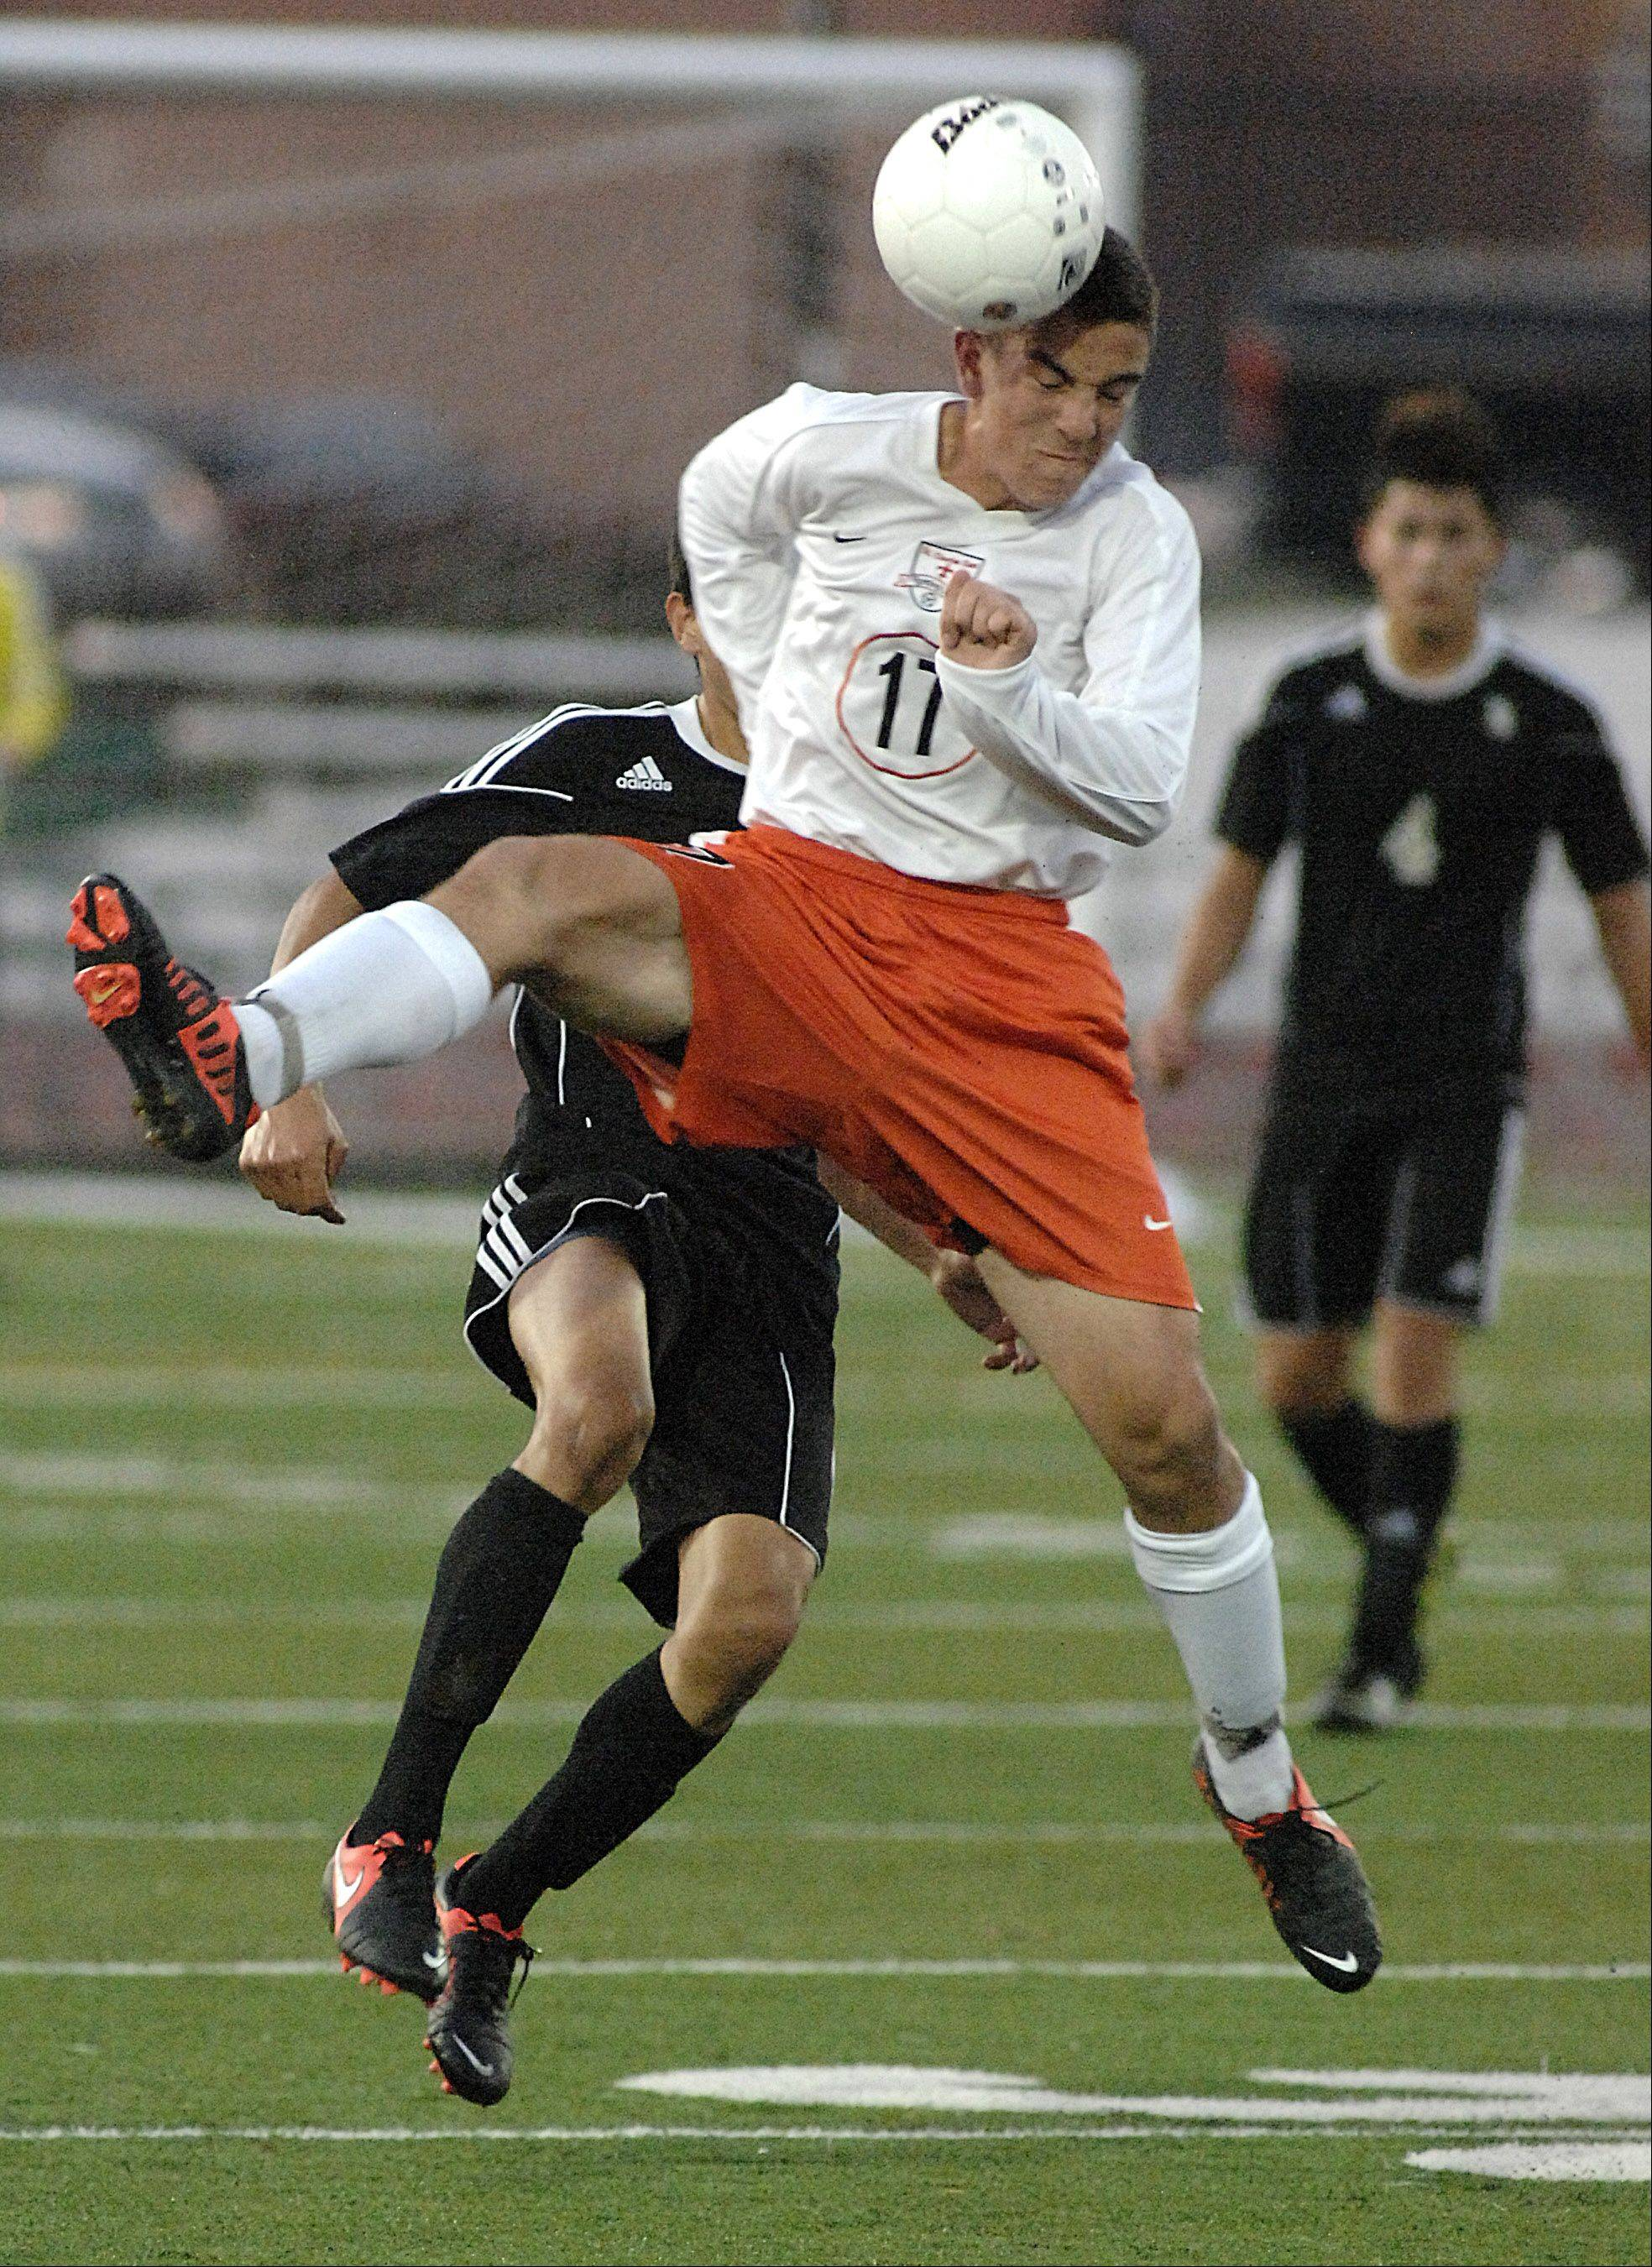 St. Charles East's Brad Corirossi burst in front of Streamwood's Daniel Nevarez to steal the ball in the second half on Tuesday, October 23.